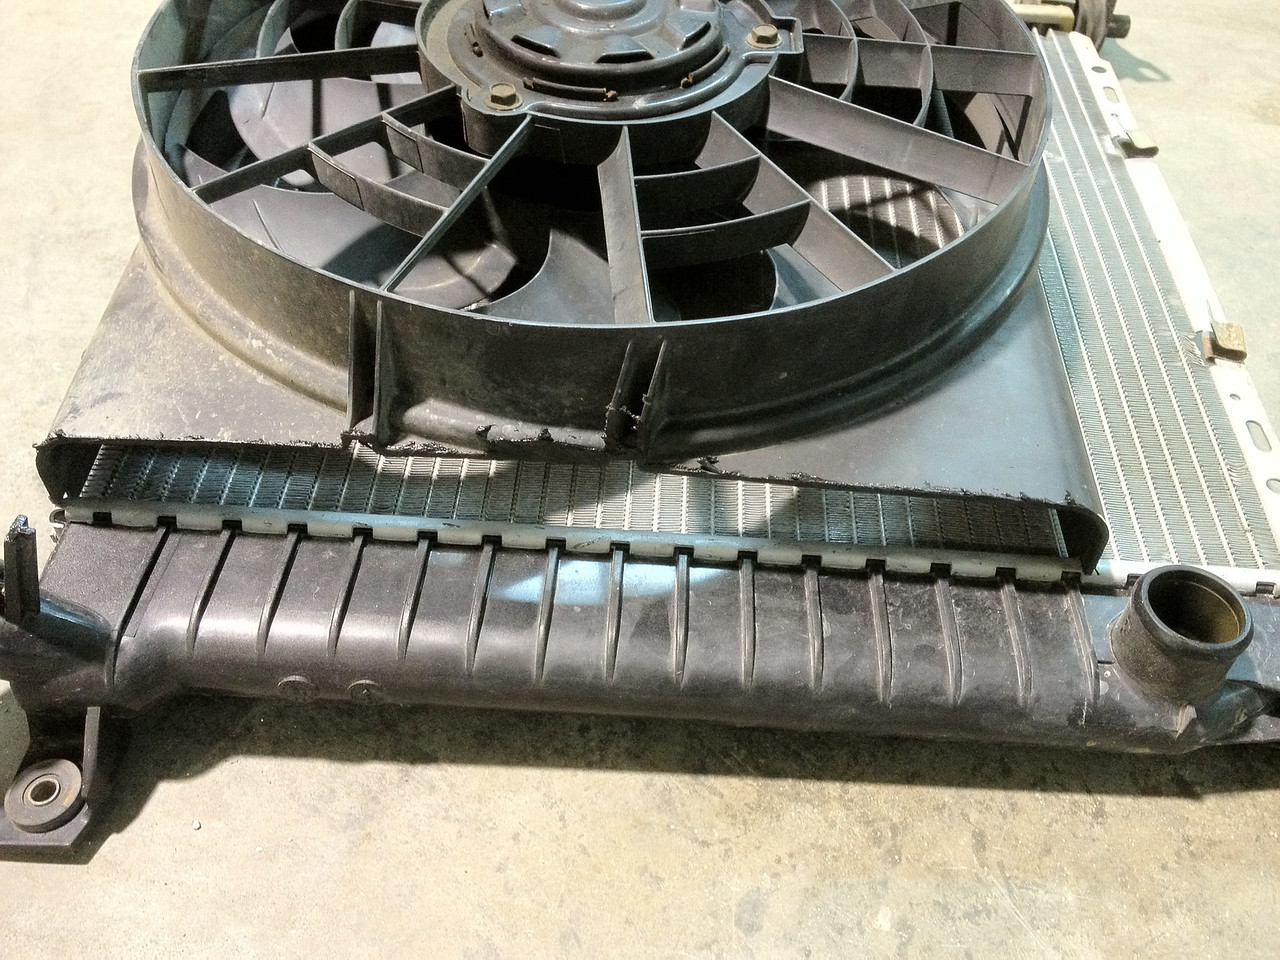 Have to close in this gap and come up with a support for the fan.